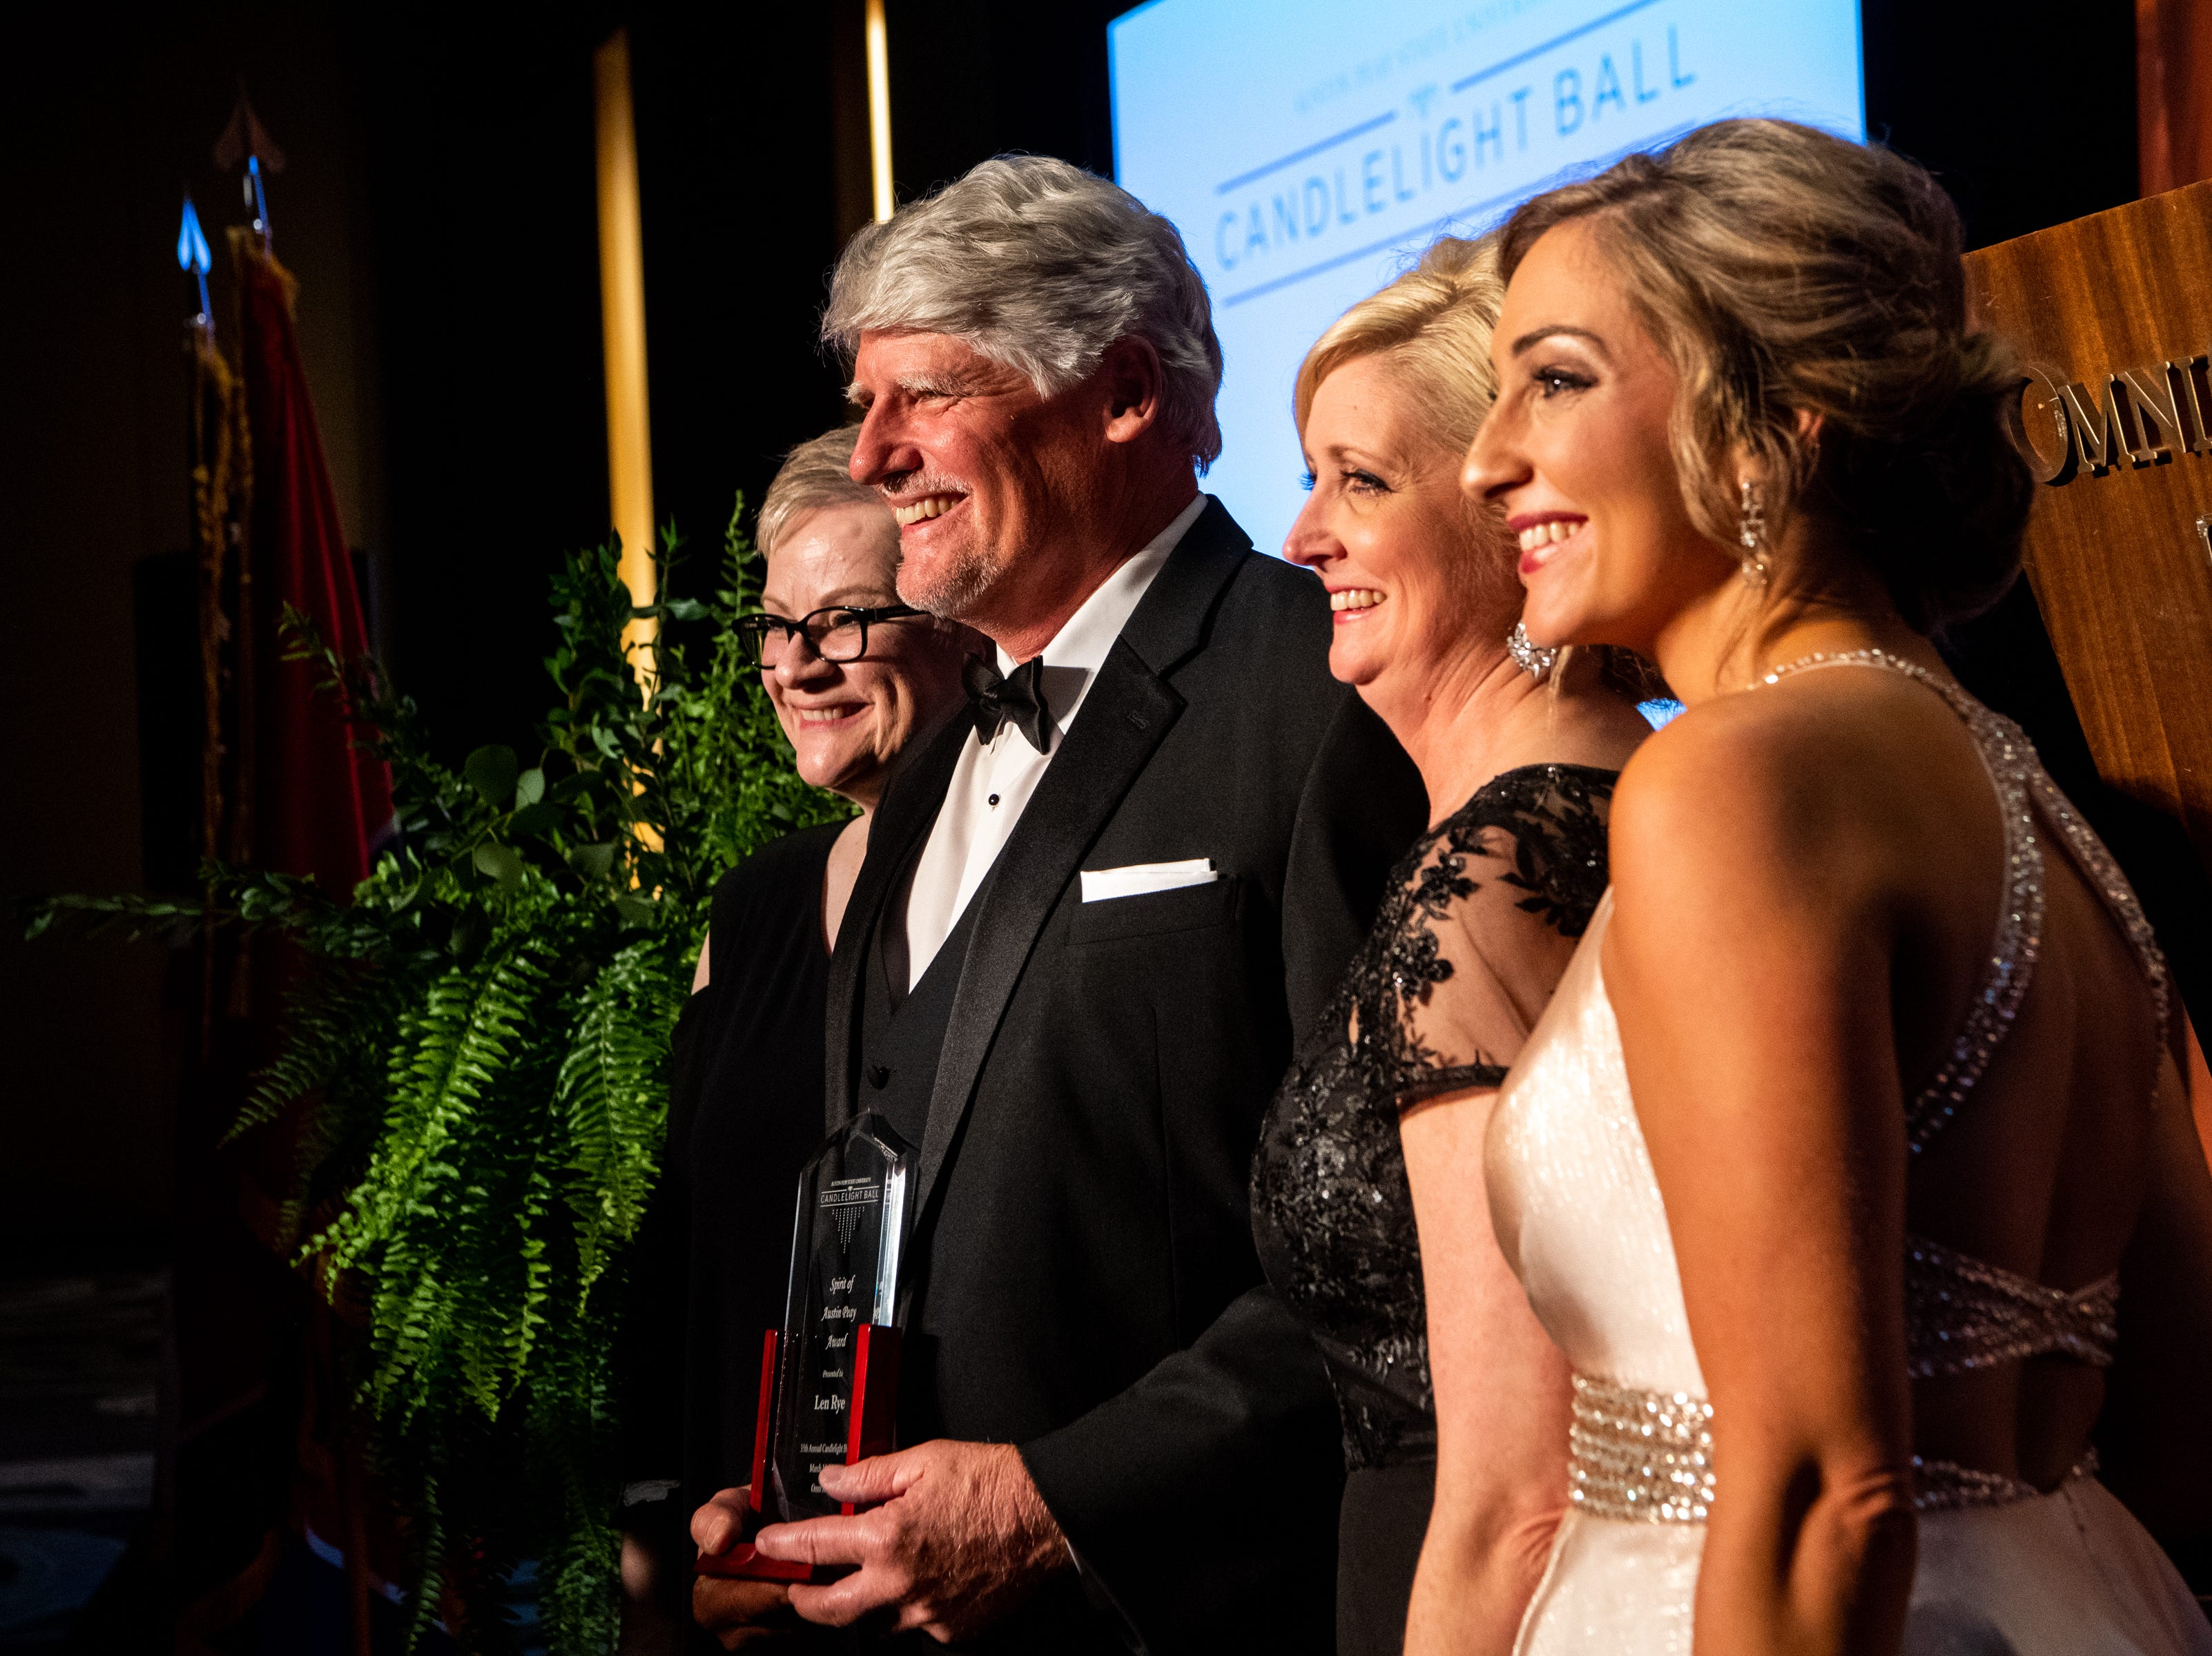 Len Rye receives the Spirit of Austin Peay Award during Austin Peay State University's annual Candlelight Ball at the Omni Nashville Hotel Saturday, March 16, 2019, in Nashville, Tenn.